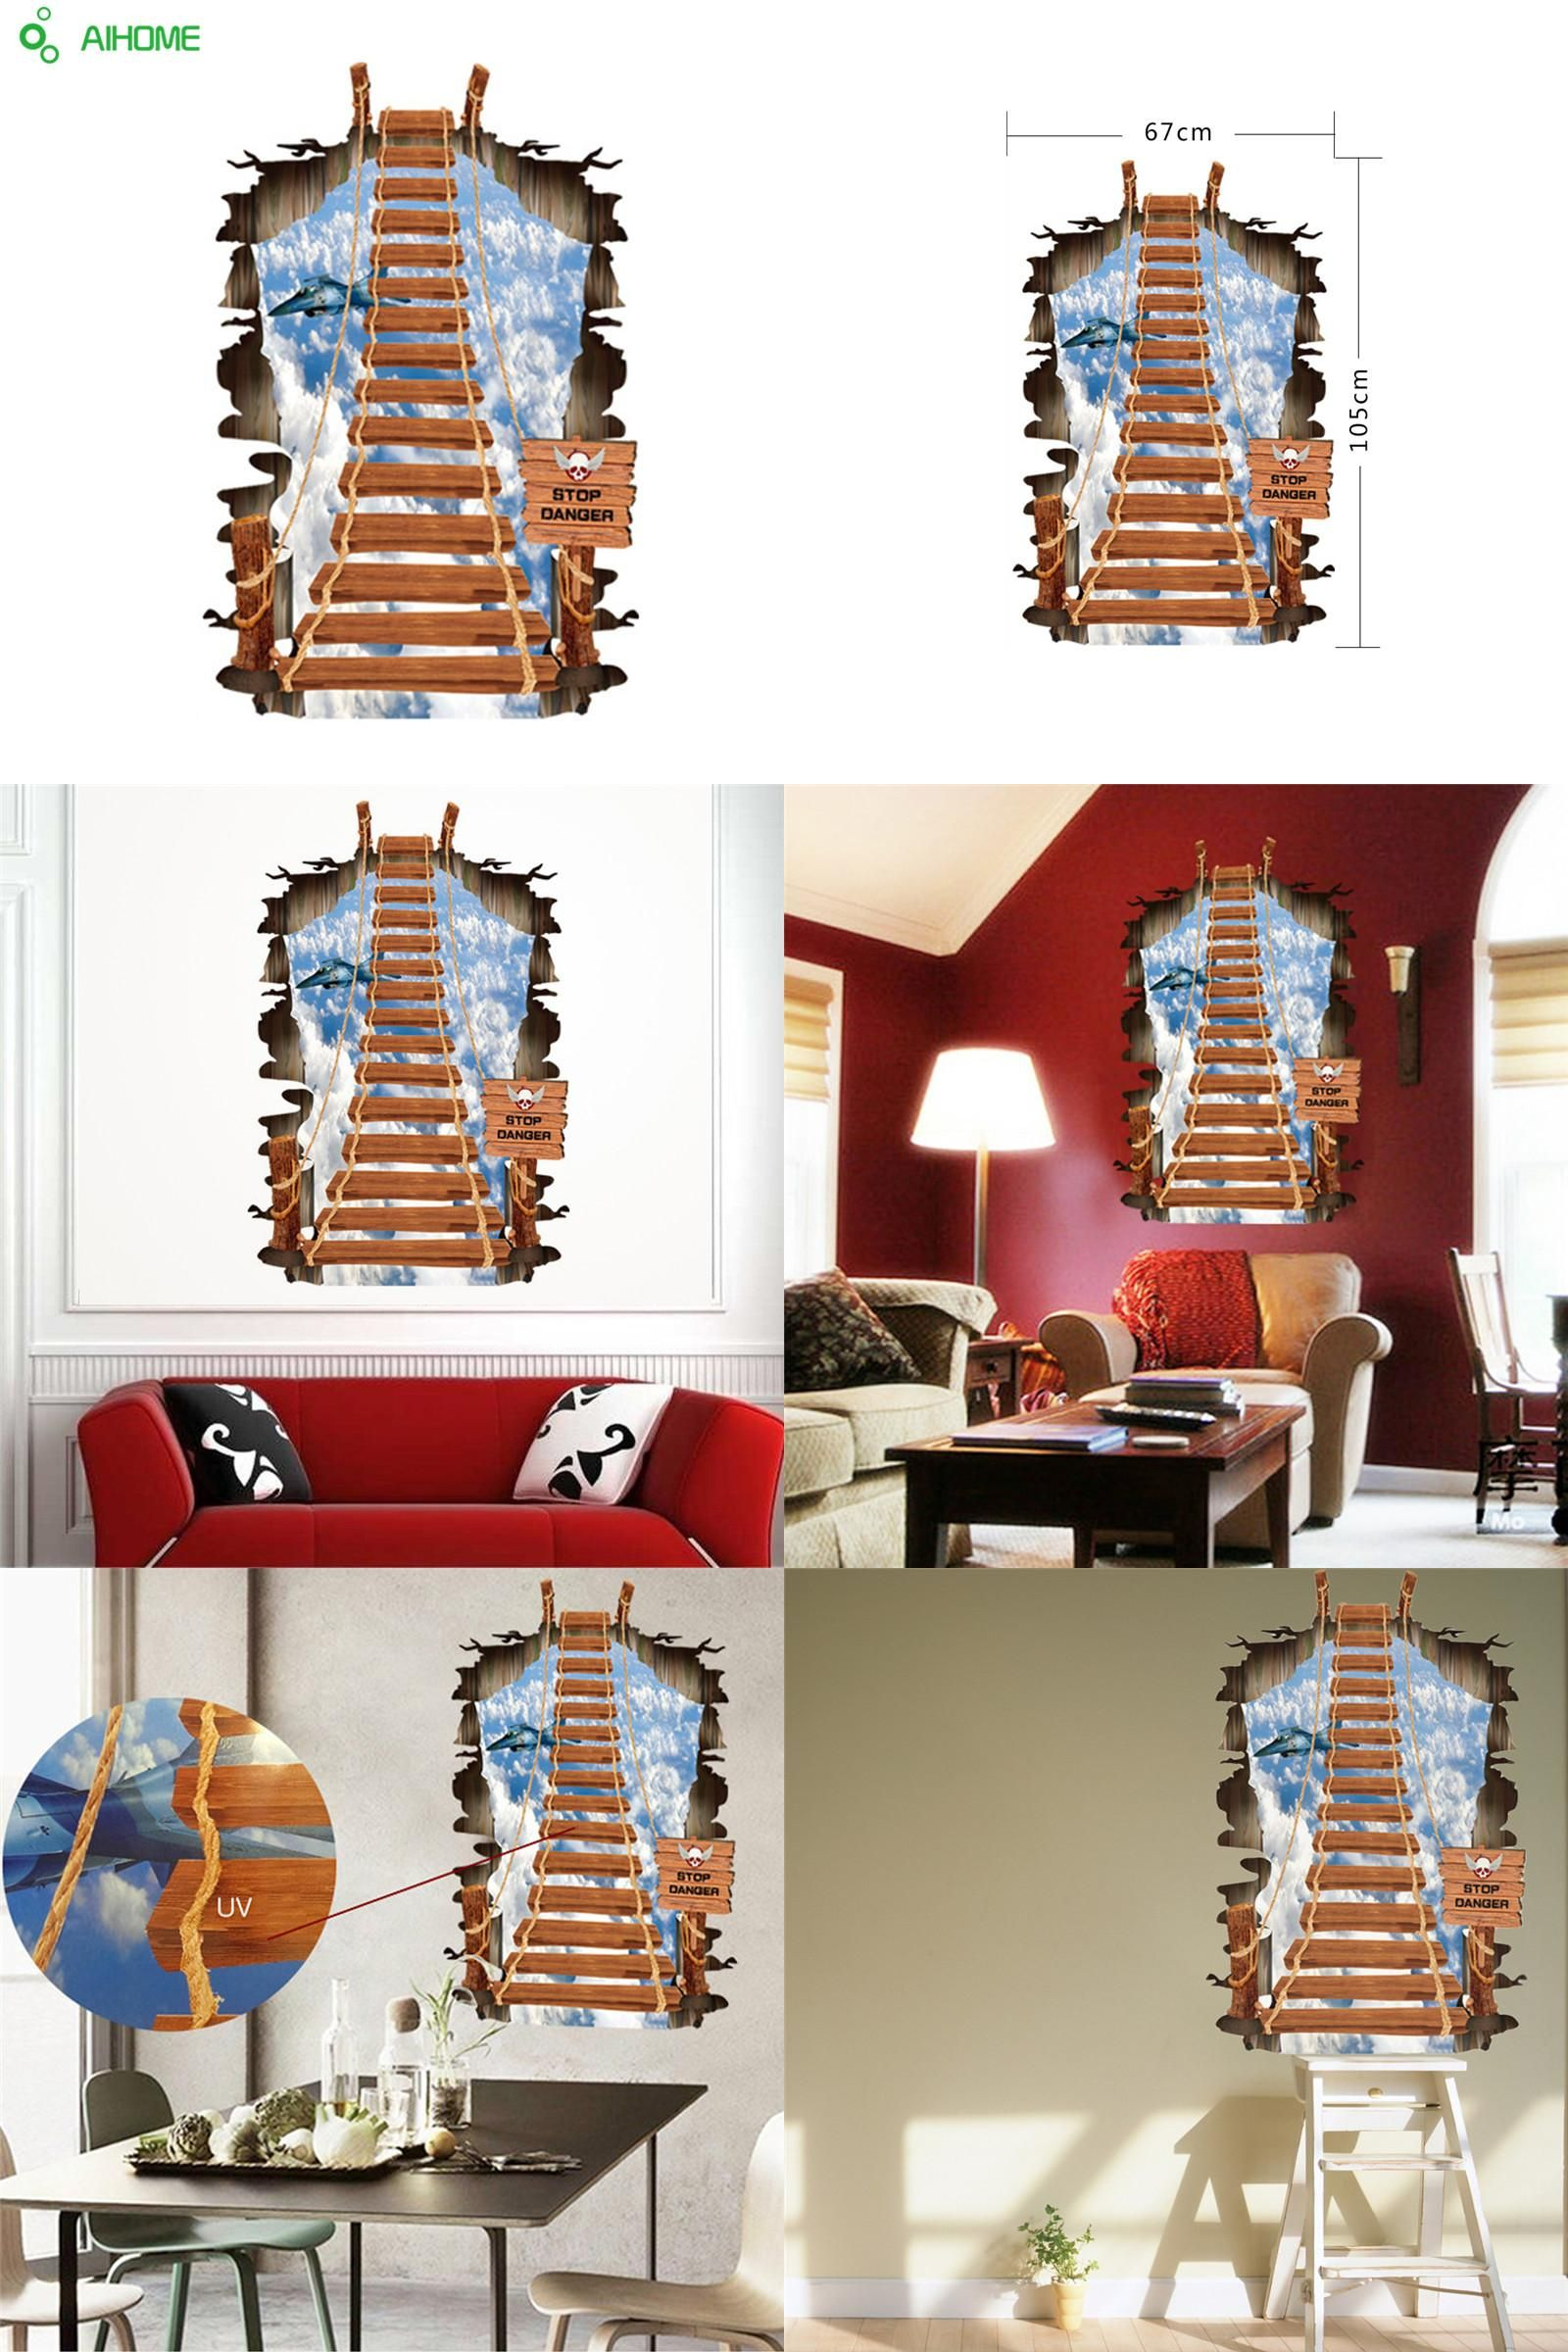 Visit to buy d stairs personality fashion creative ladder sky wall